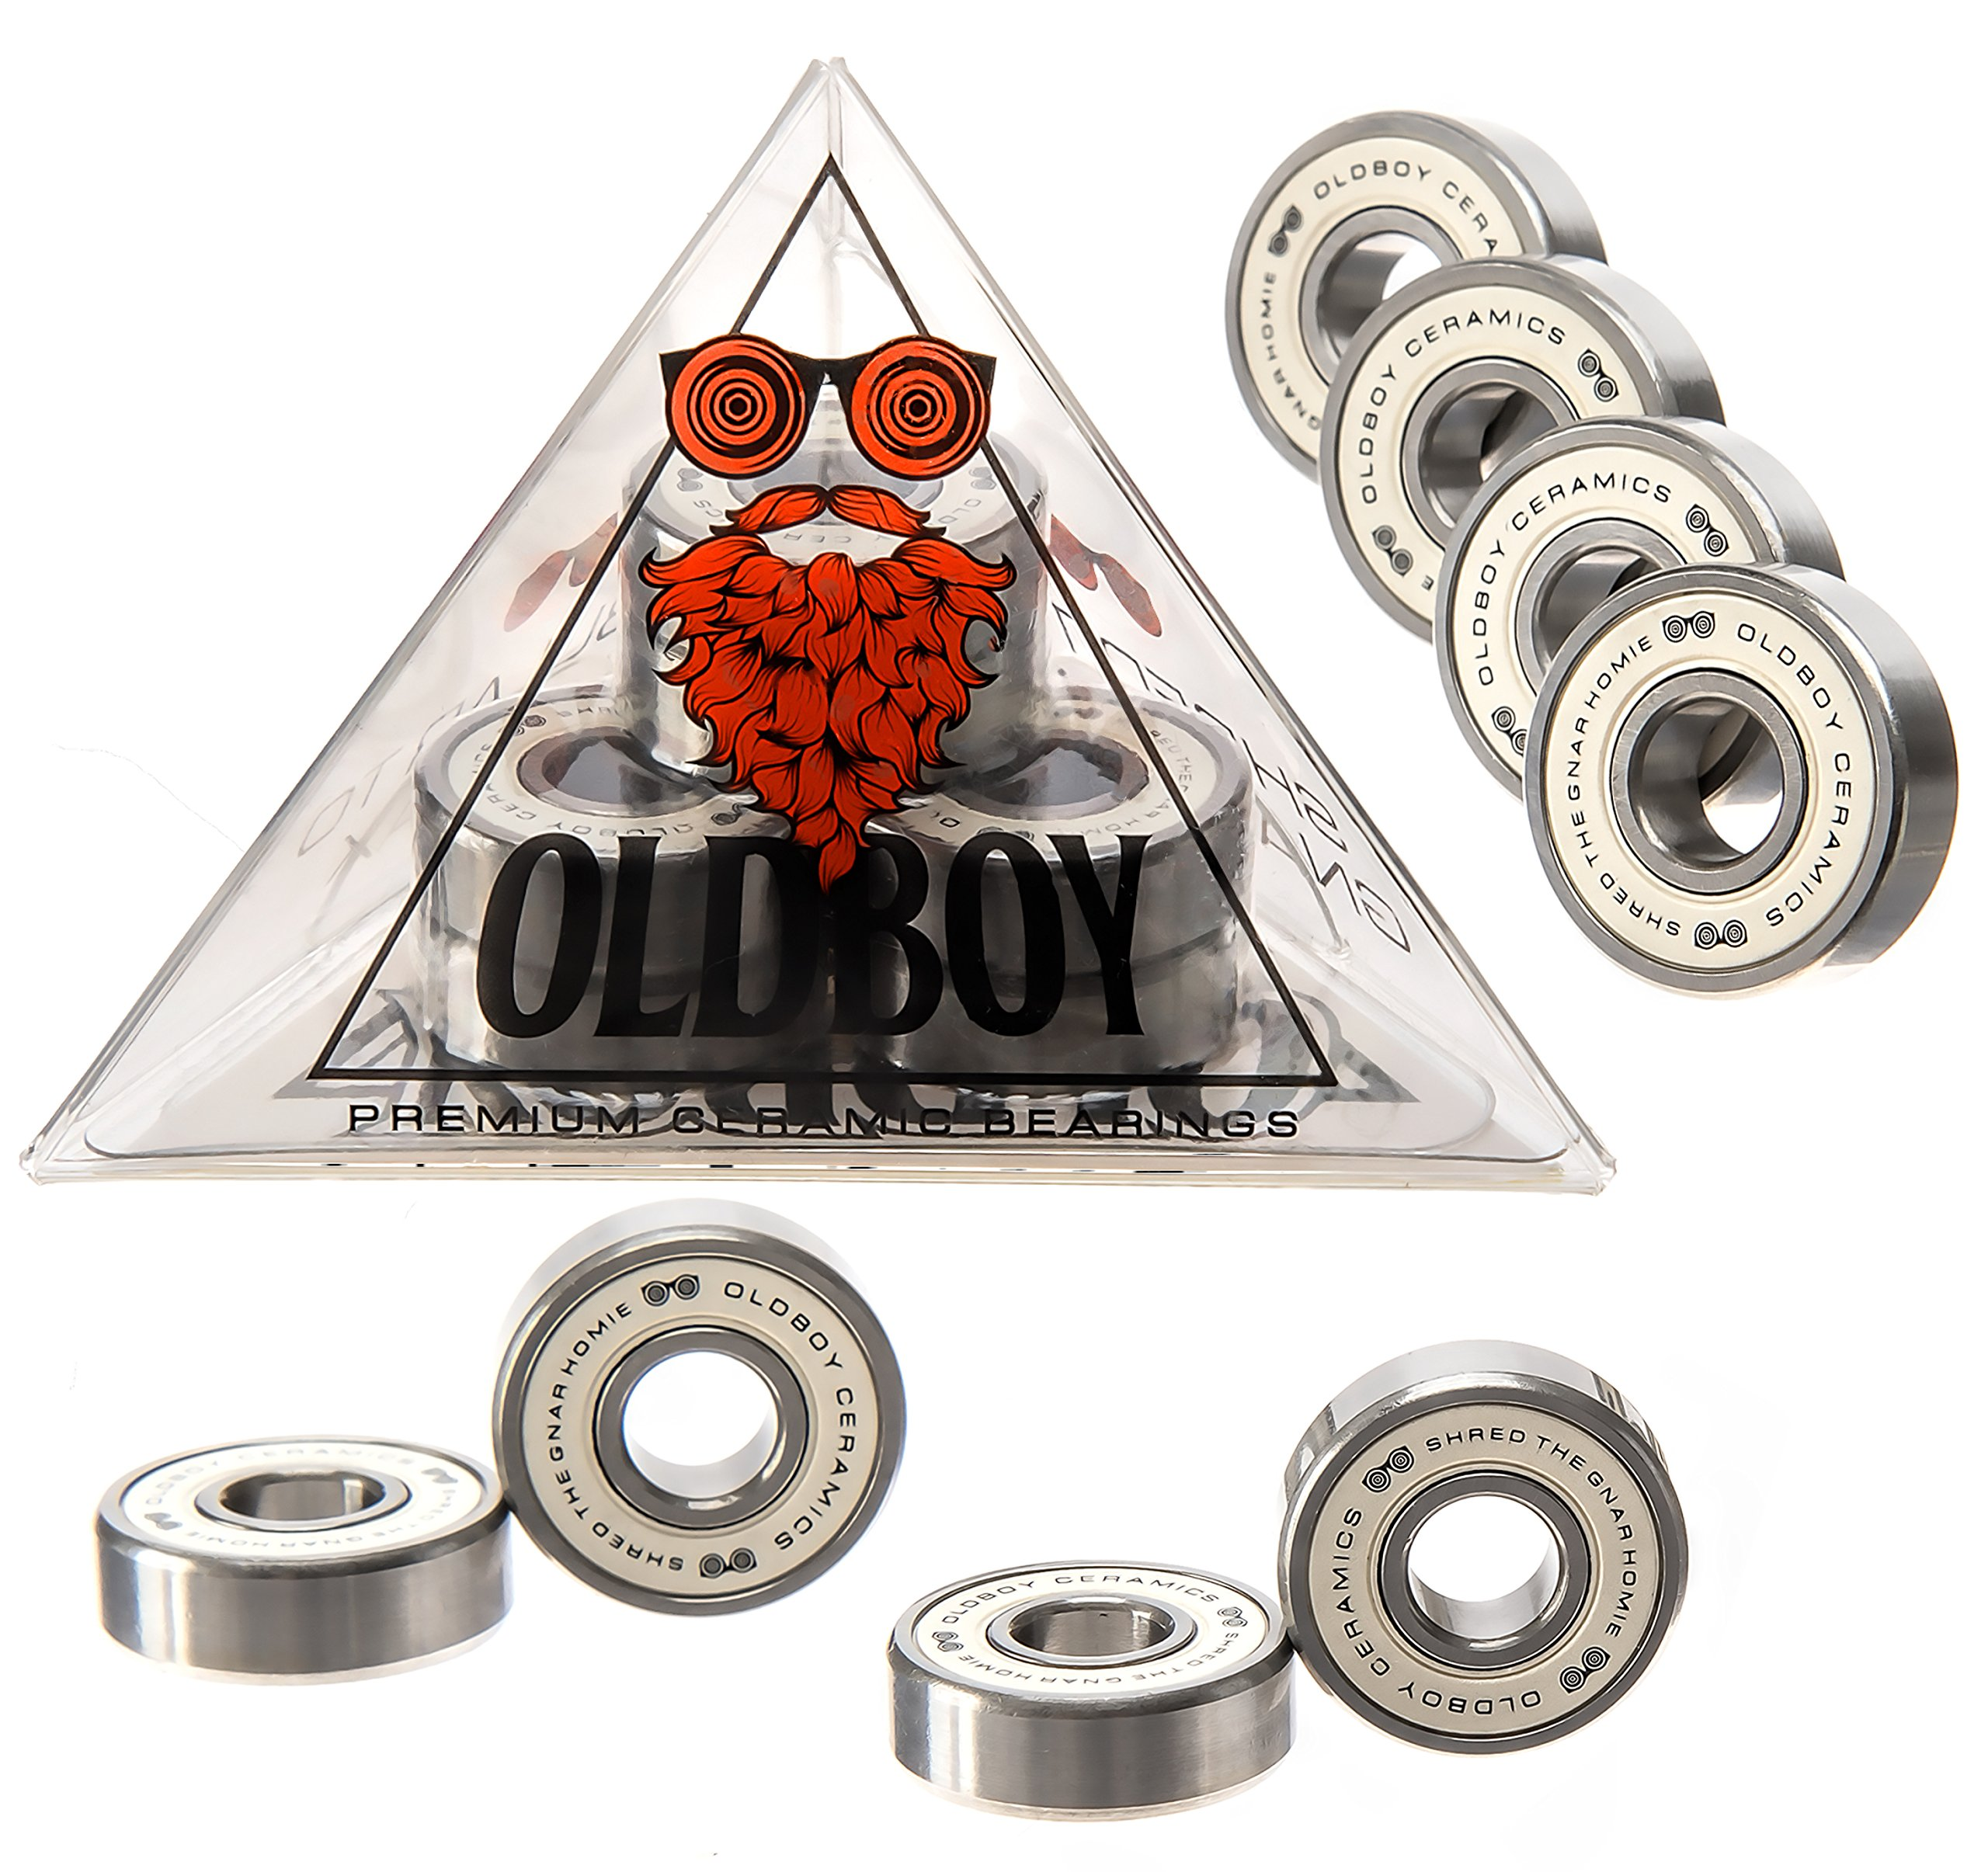 Oldboy Premium Ceramic Bearings with indestructible balls for a faster, smoother ride on your longboard or skateboard by Oldboy Bearings